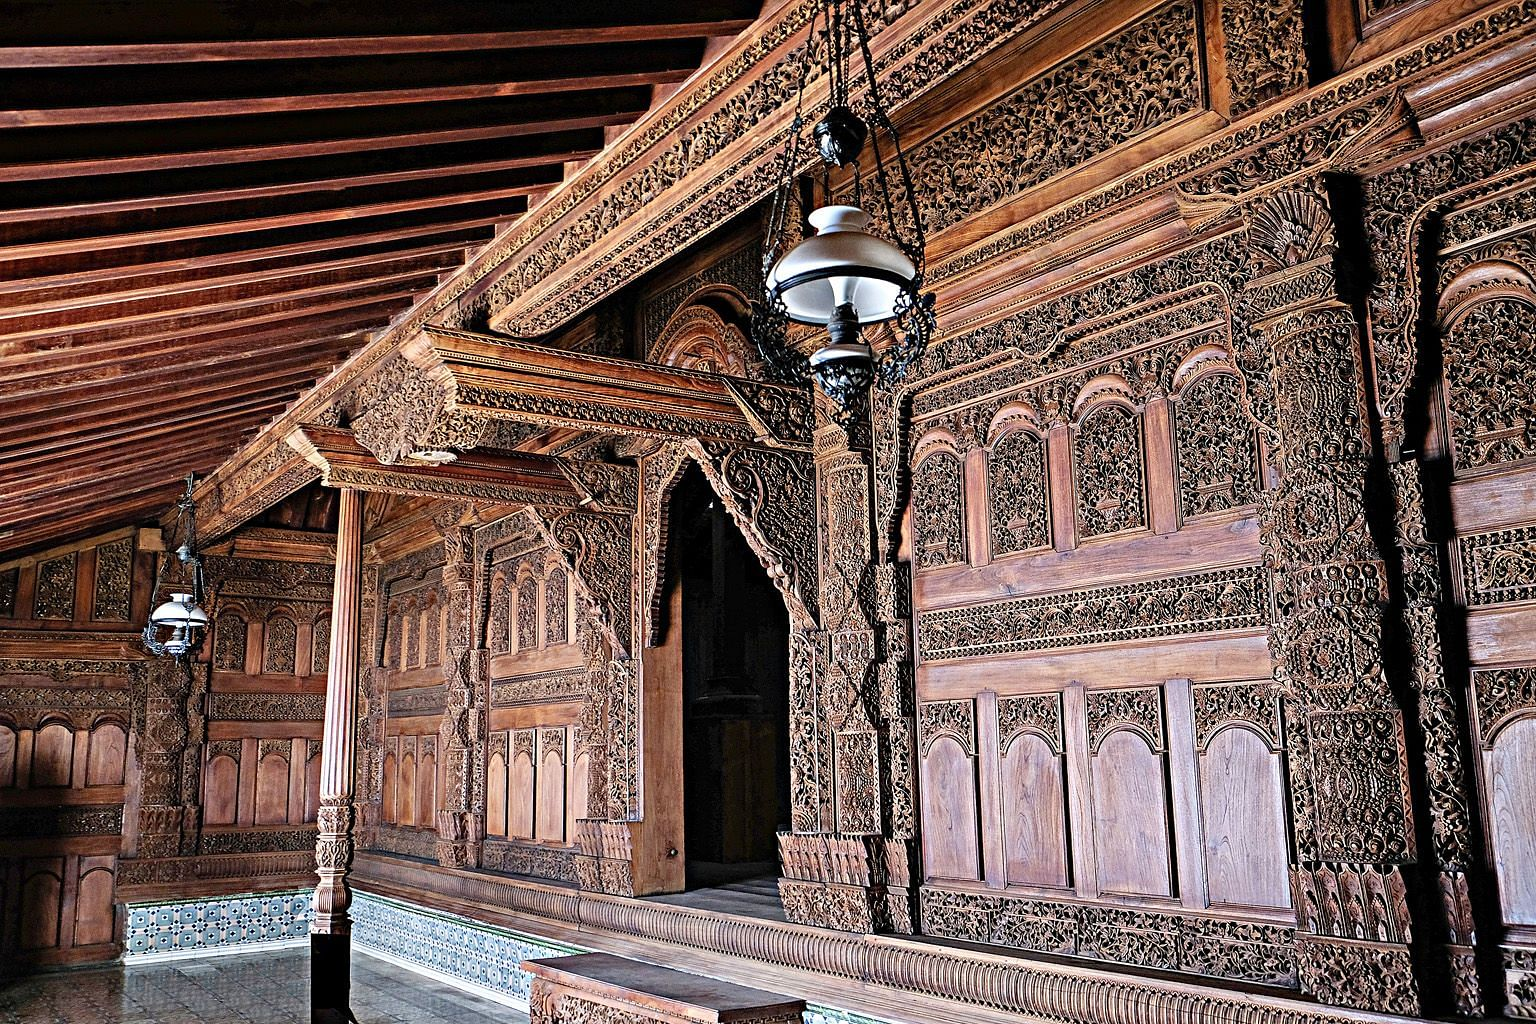 Gebyok typically features intricate floral and phoenix carvings in wall-sized partitions made of heavy teakwood. PHOTO: CHRISTIAN OCTIMURDANU